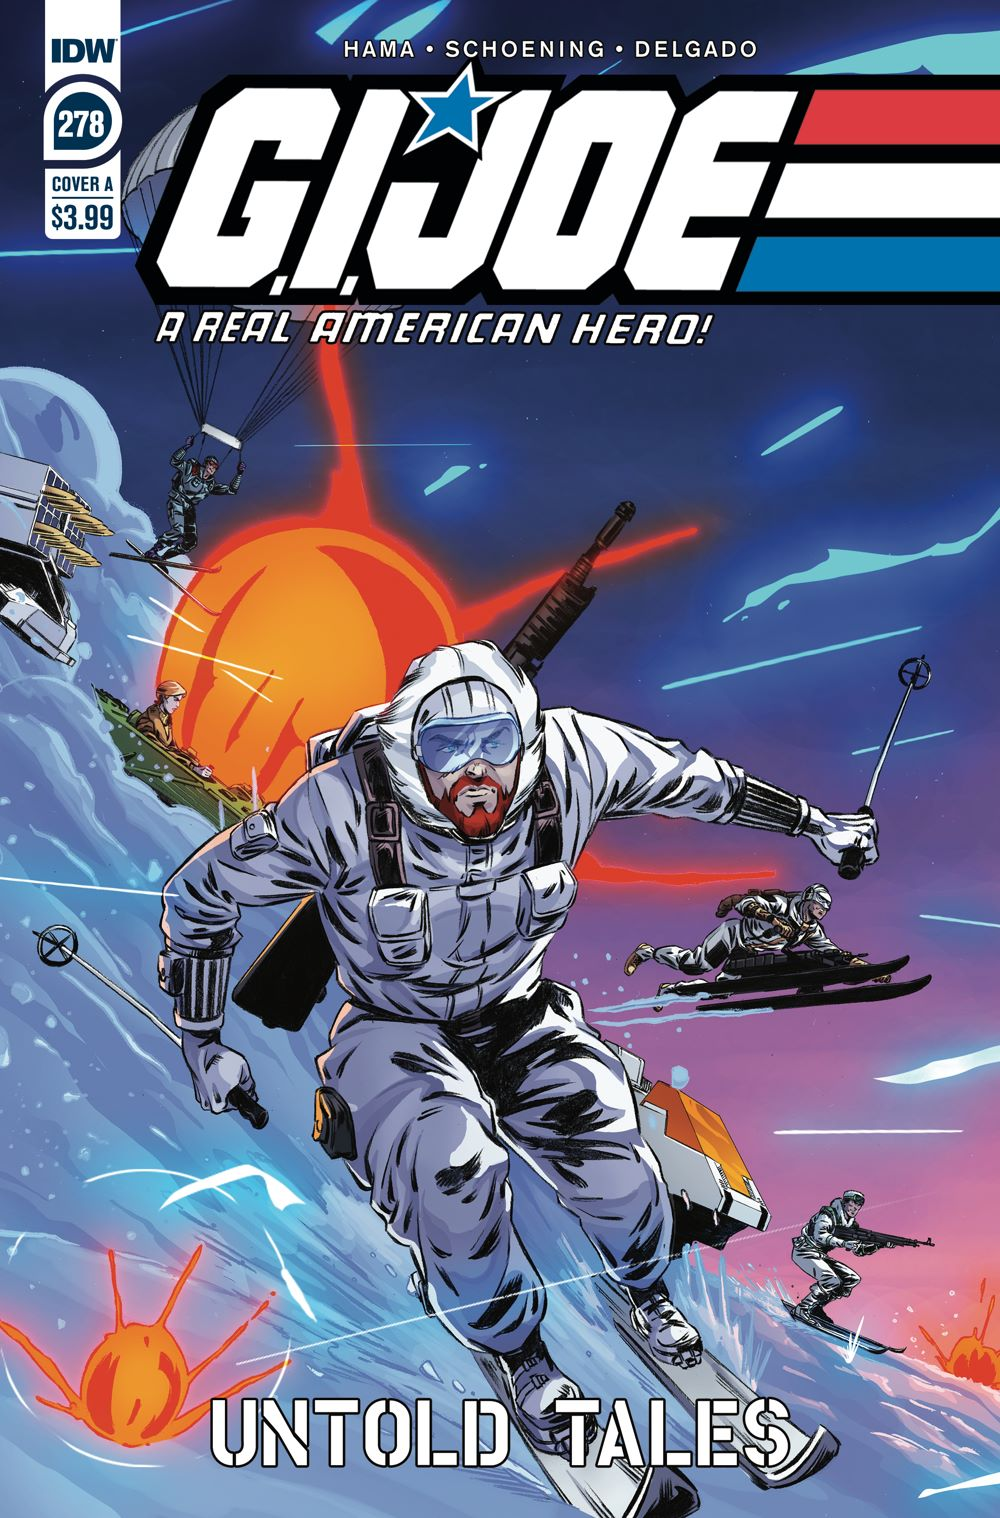 GIJoeRAH278-coverA ComicList: IDW Publishing New Releases for 02/10/2021